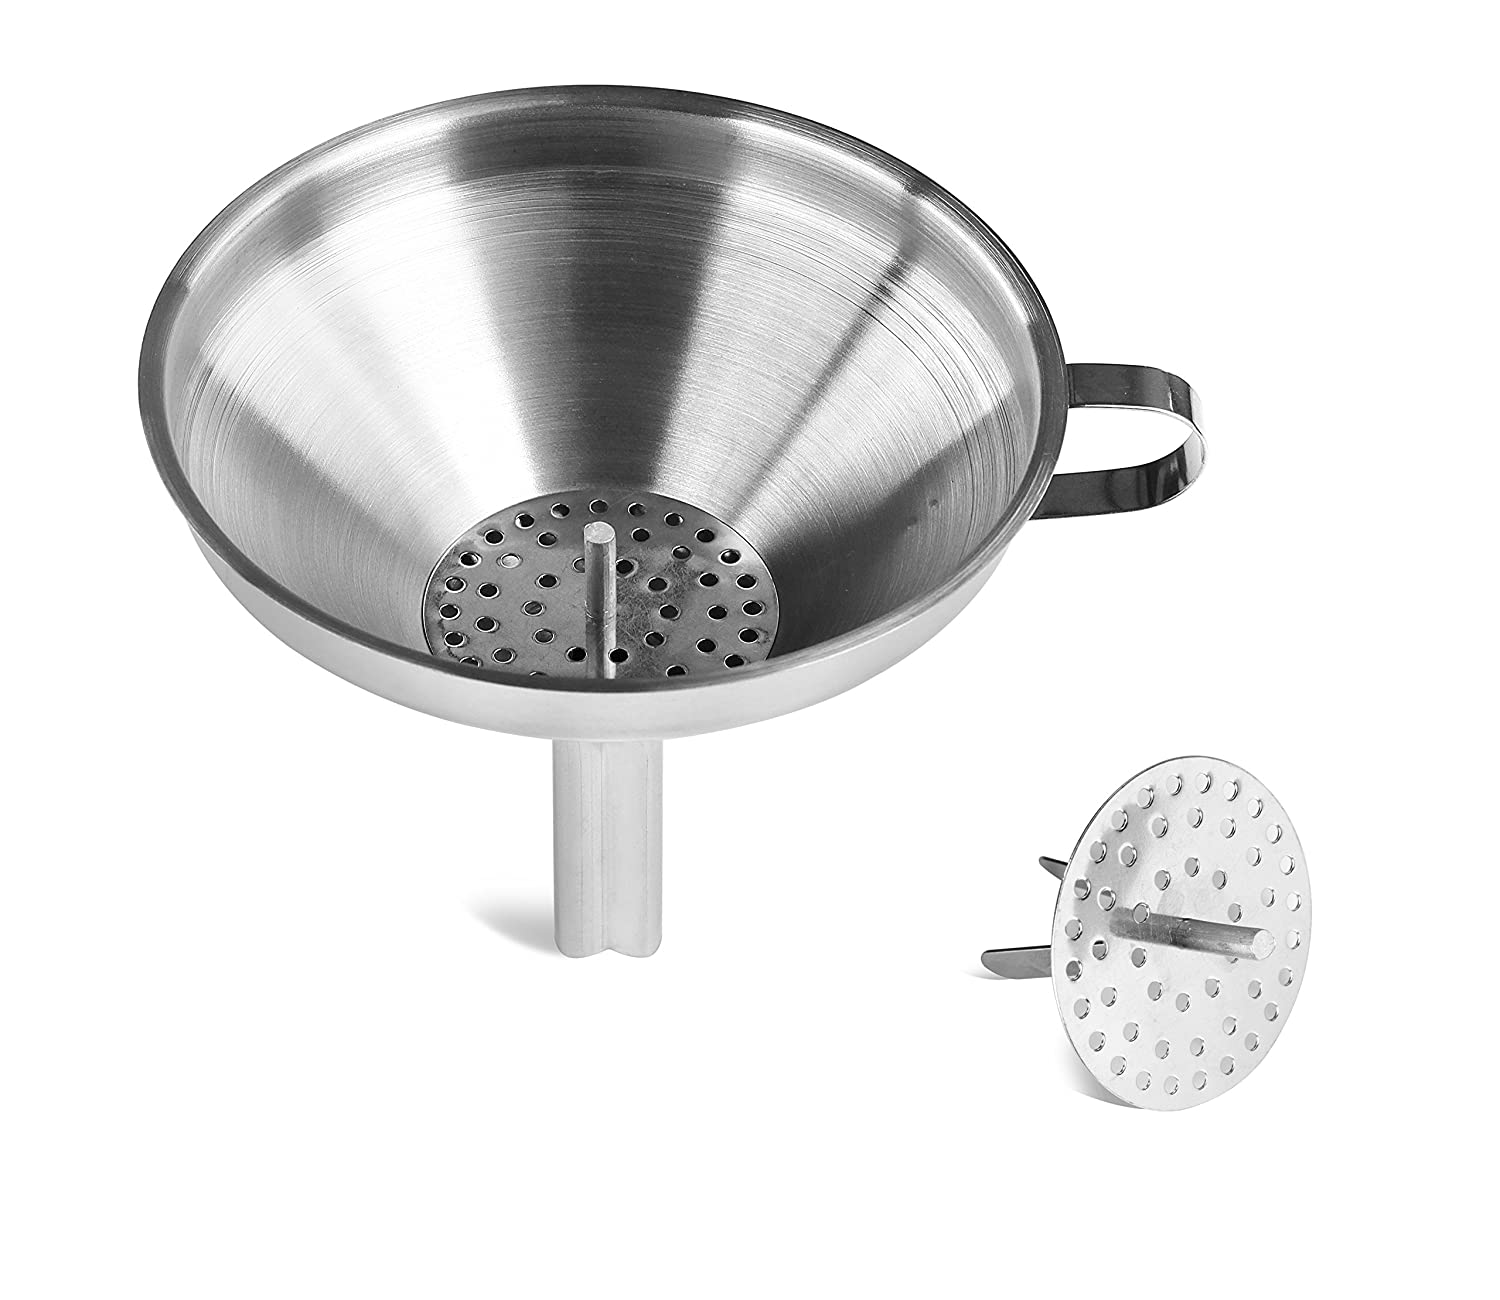 Amazon.com: New Star Foodservice 42641 Stainless Steel Funnel with ...